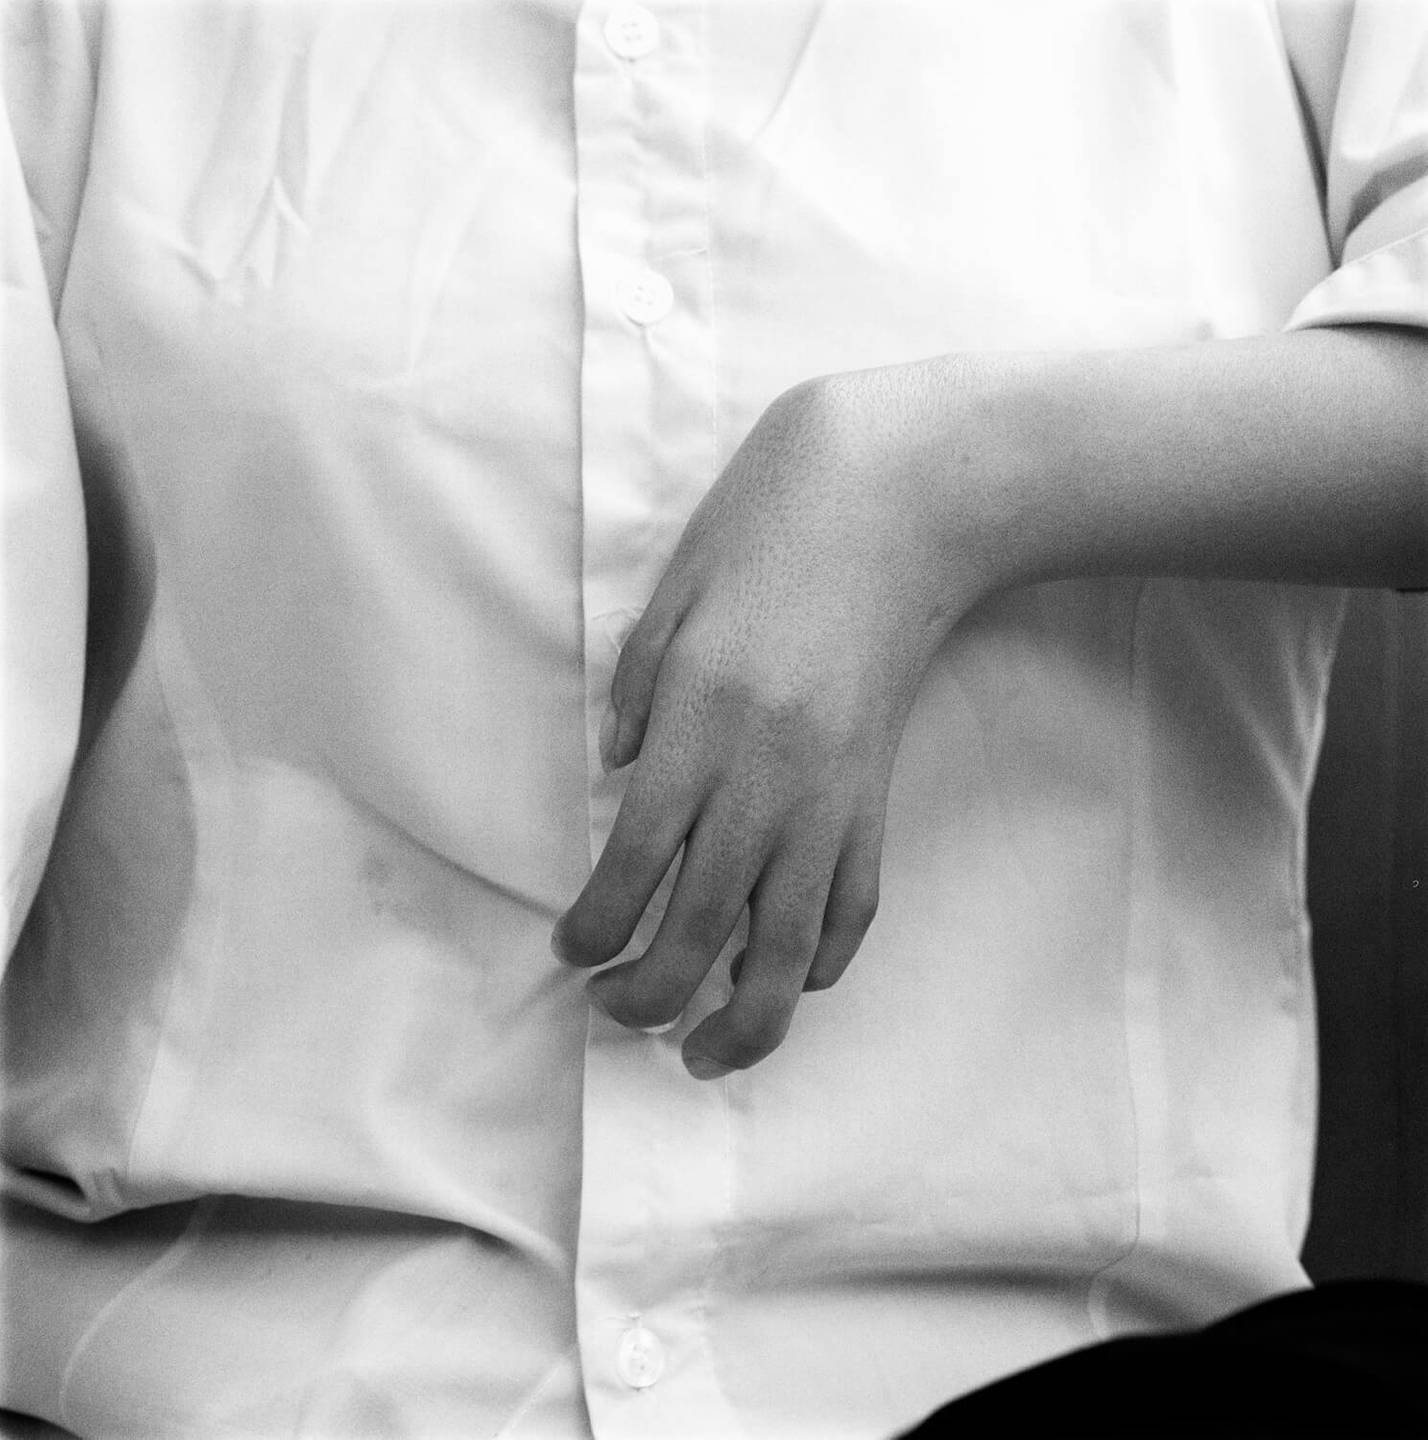 A close up of a deformed hand against a white button-down shirt.